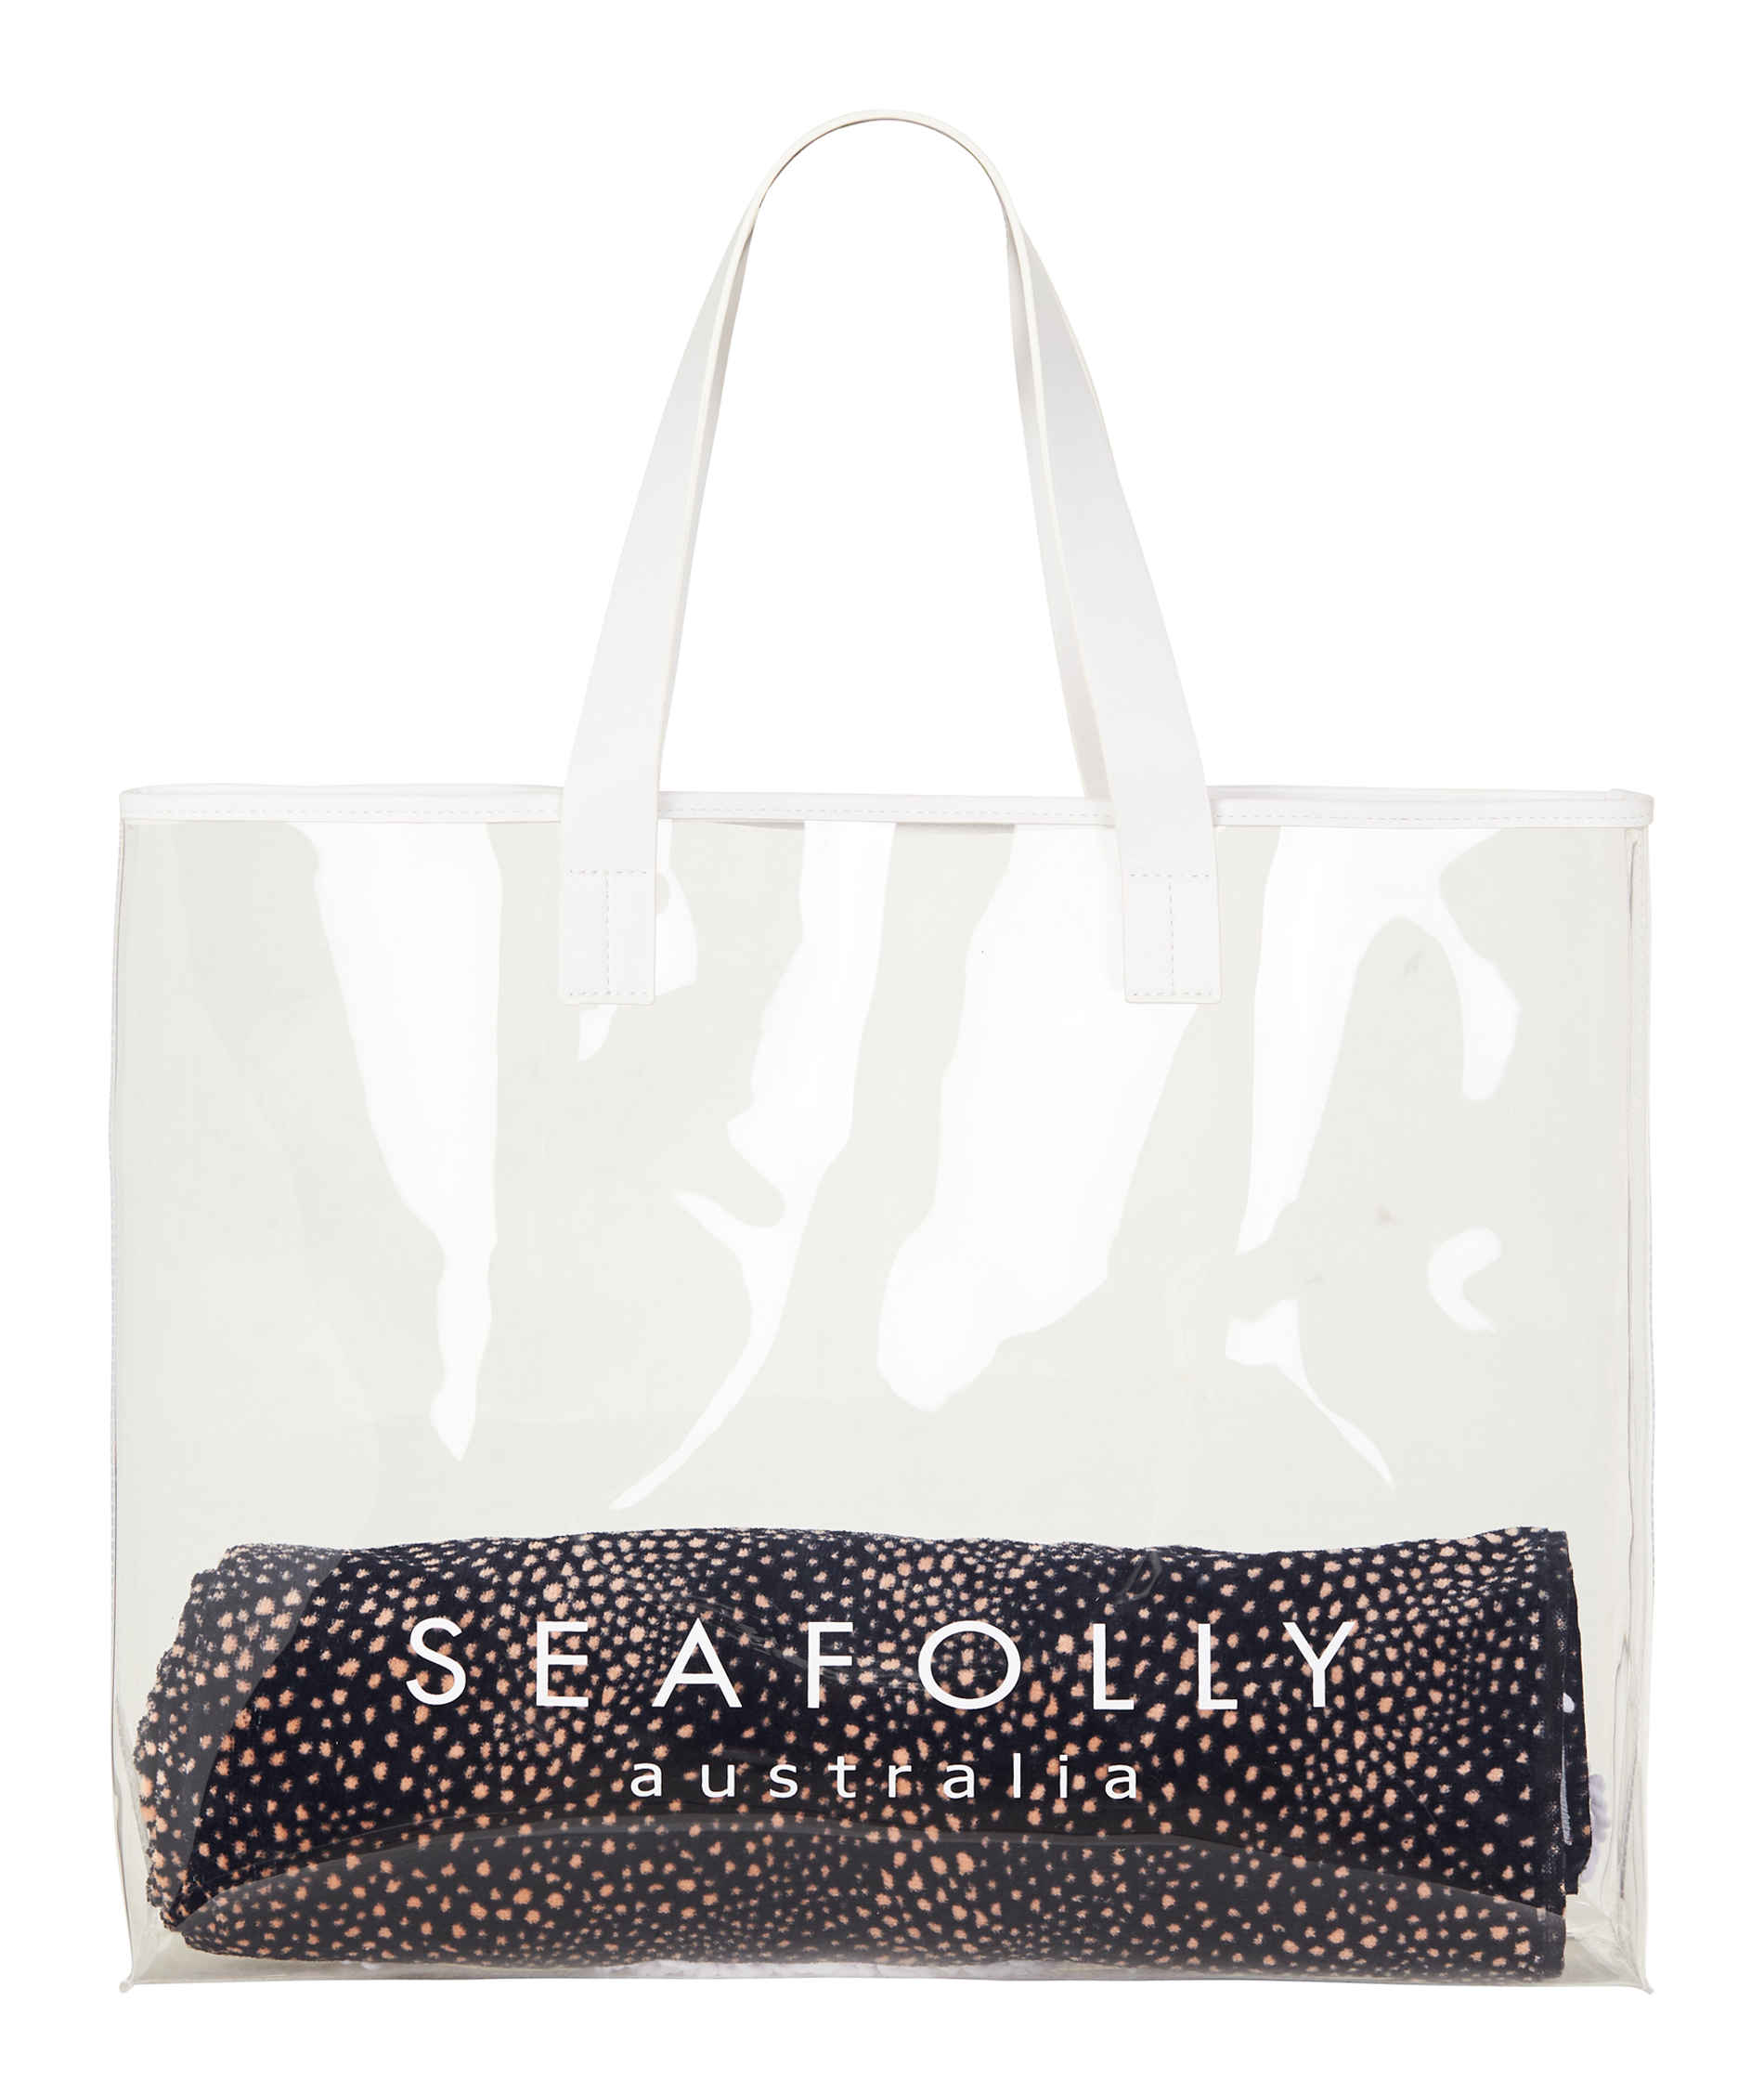 Seafolly Carried Away Translucent Tote